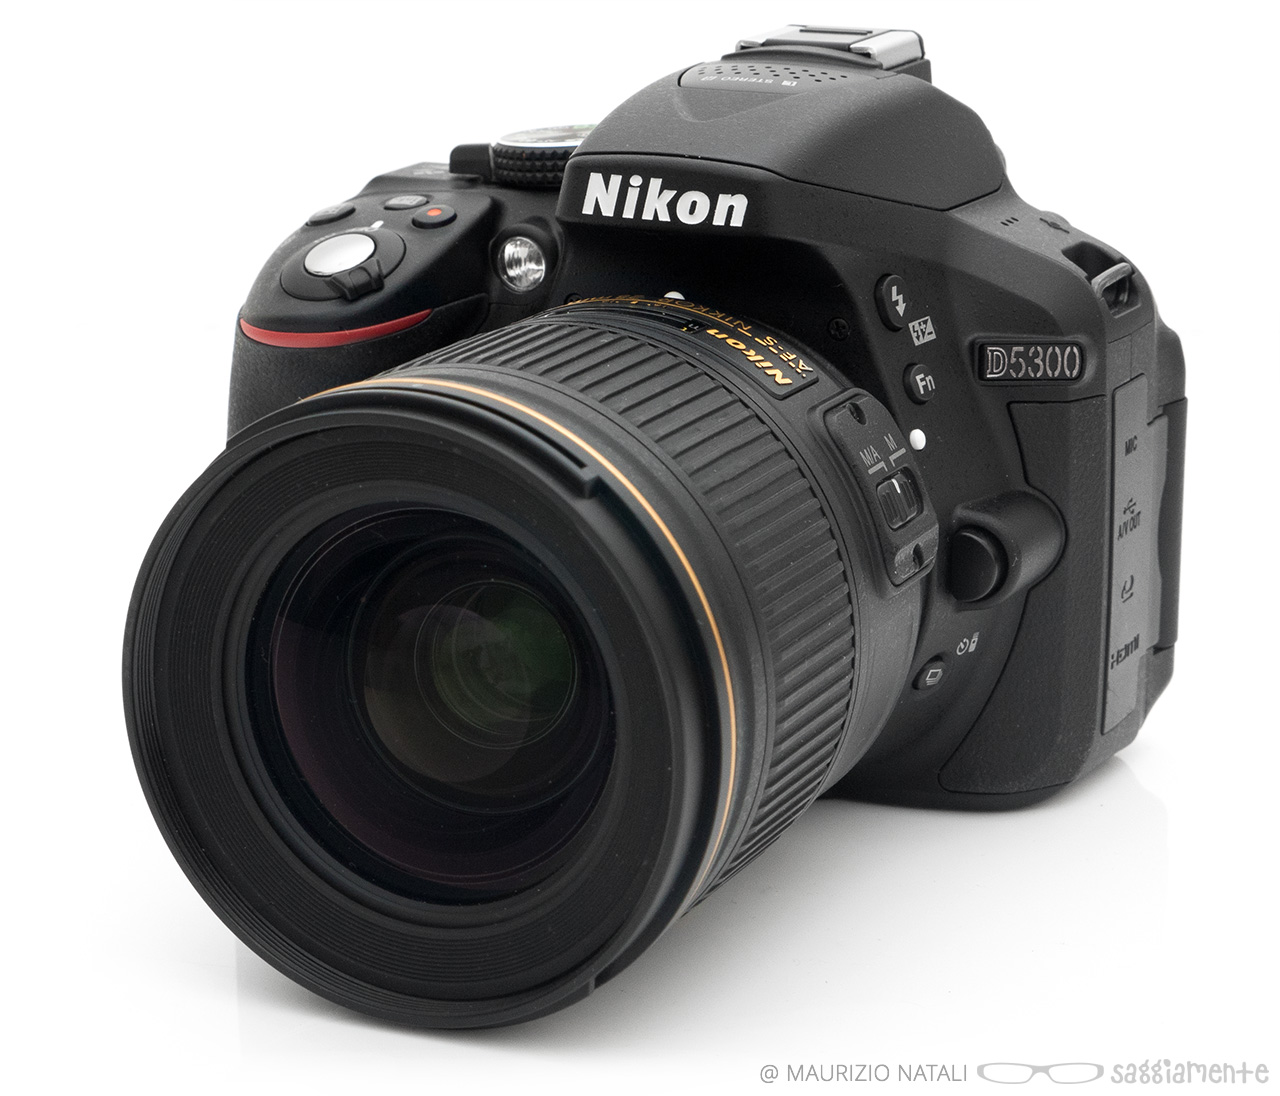 nikond5300-front-right